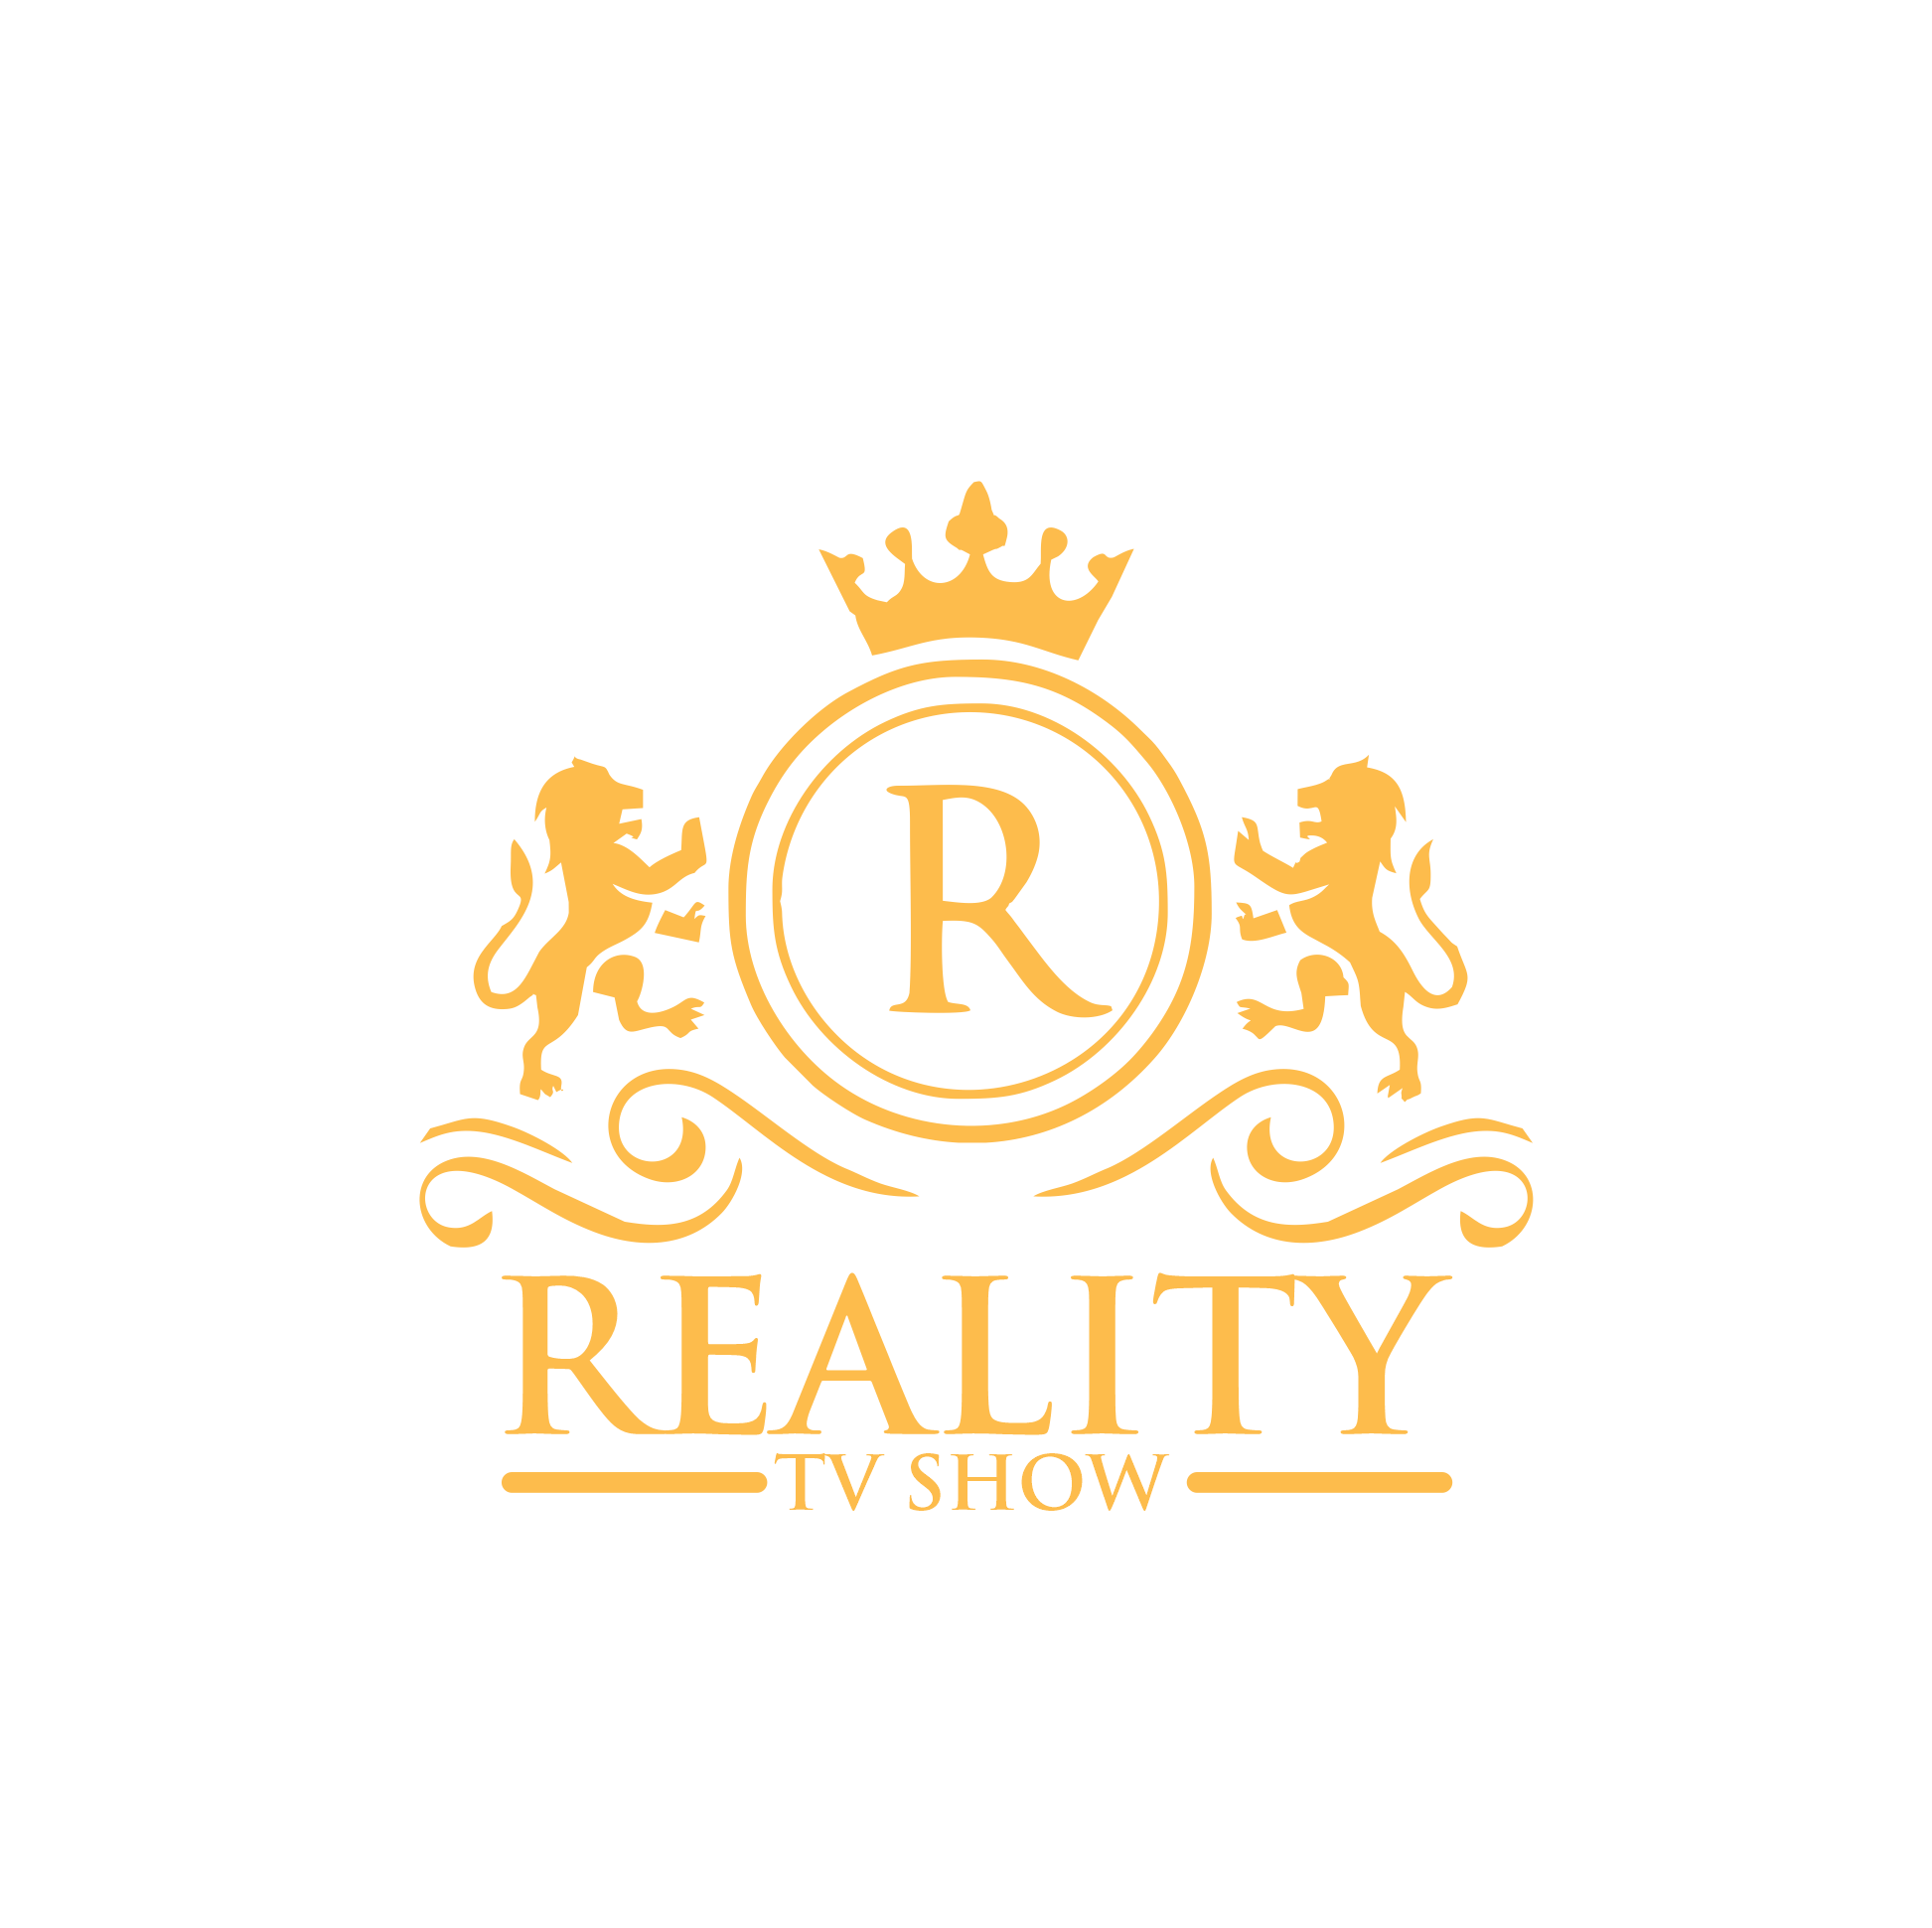 cropped-REALITY-SHOW-LOGO22222-3.png